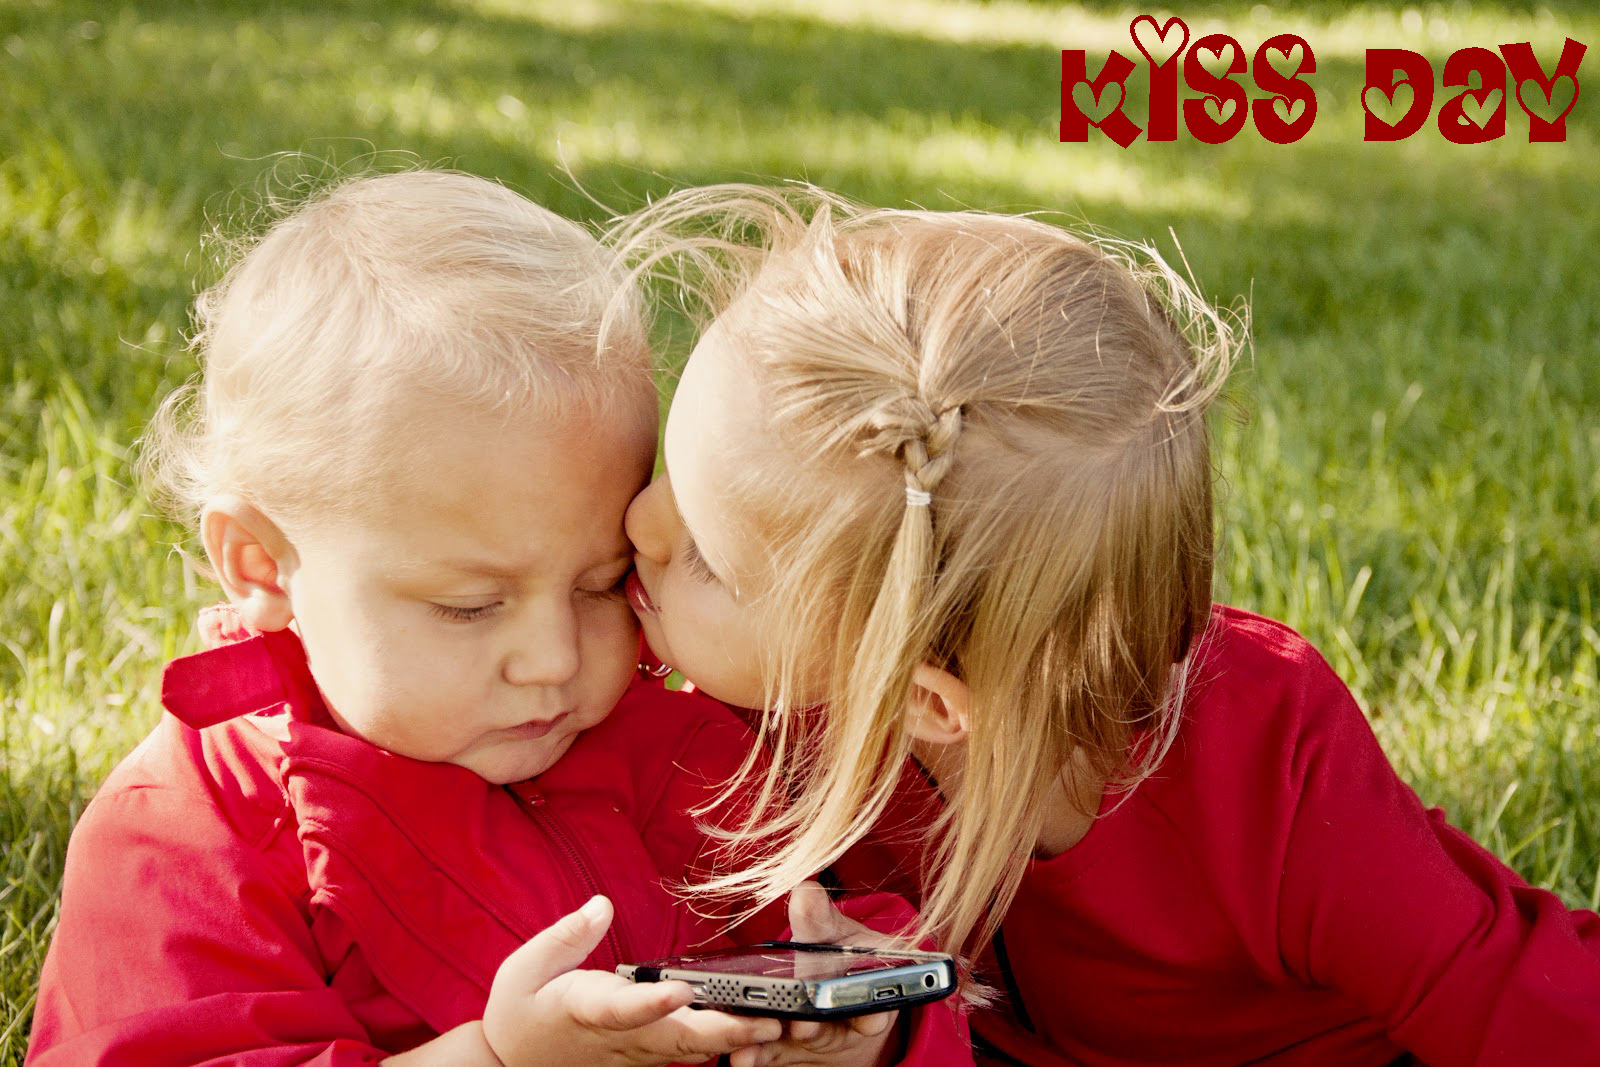 Wallpaper For Kiss Day